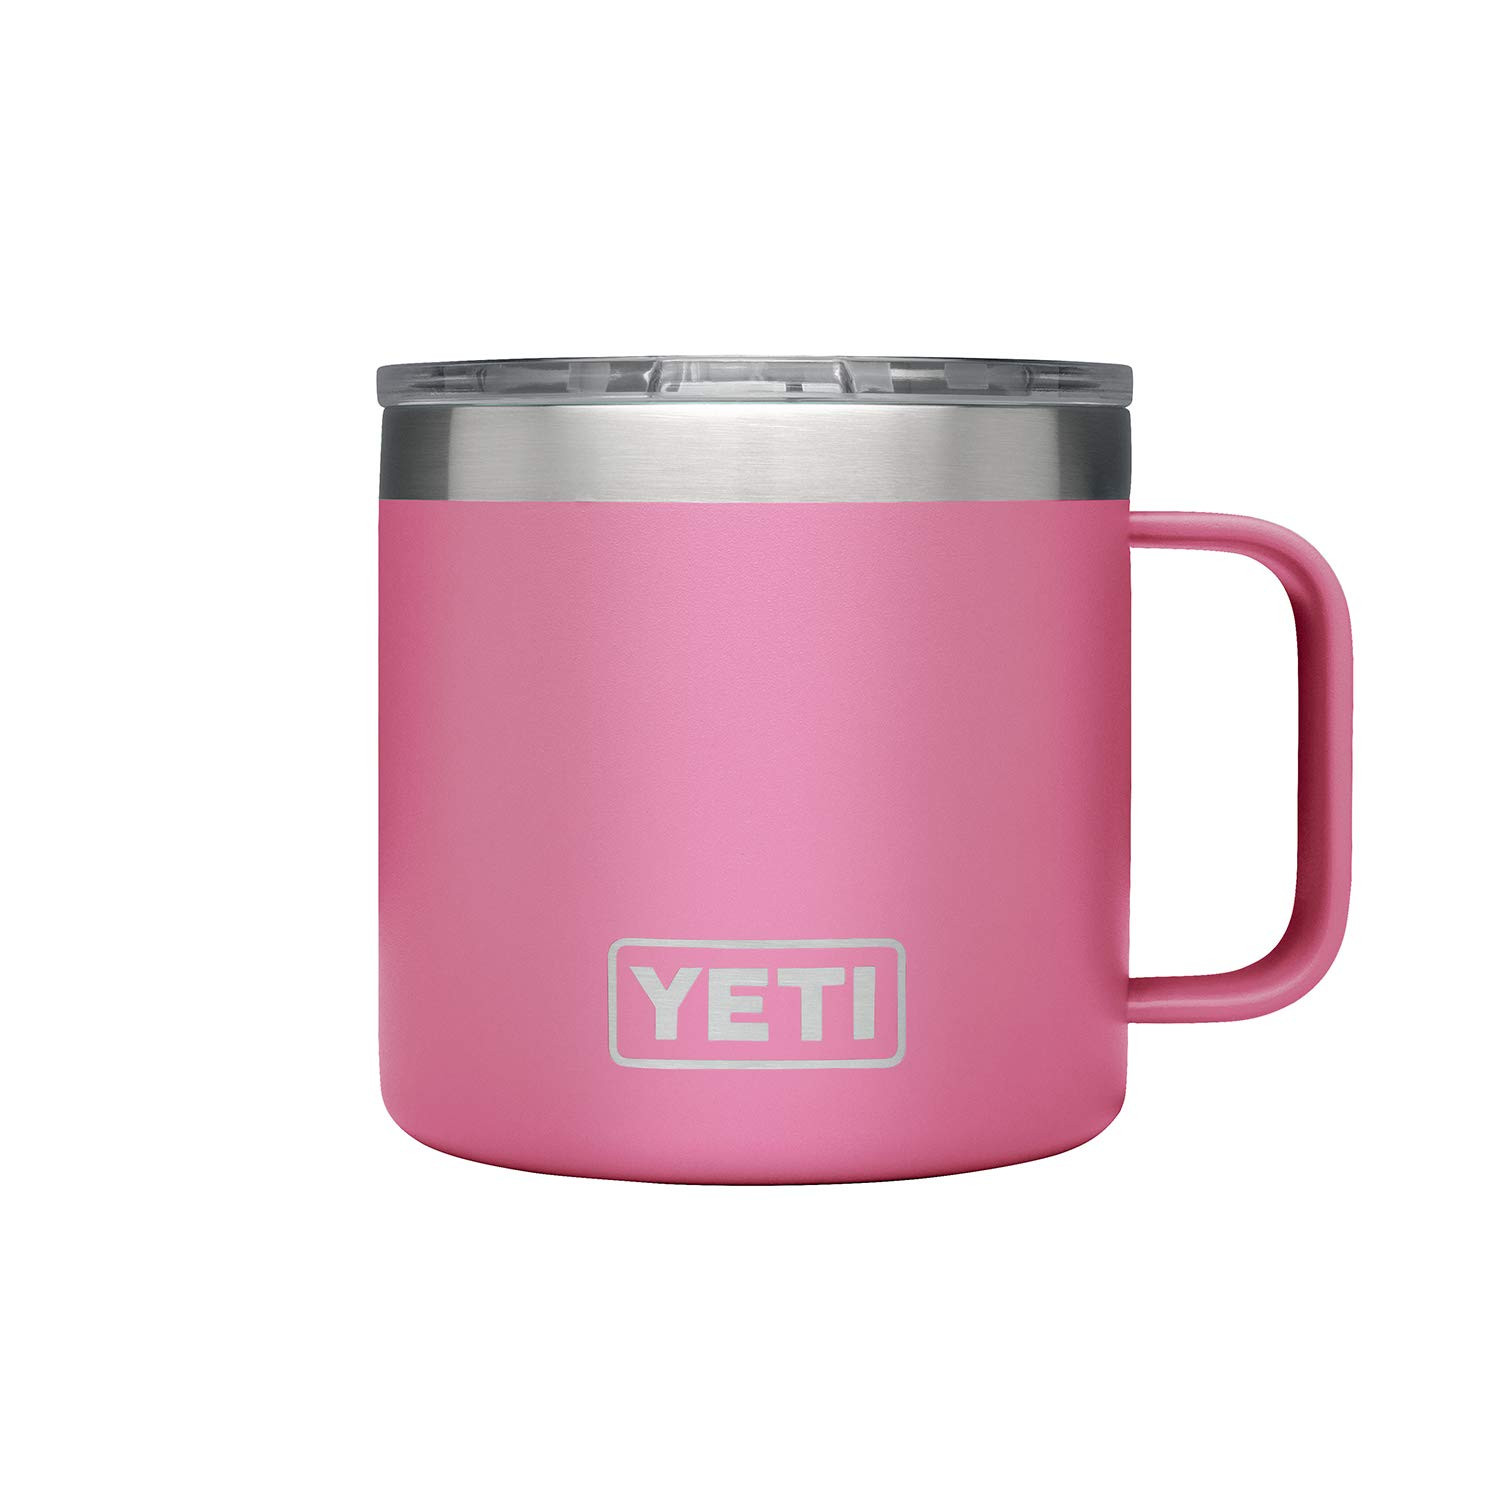 YETI Rambler 14 oz Stainless Steel Vacuum Insulated Mug with Lid, Harbor Pink